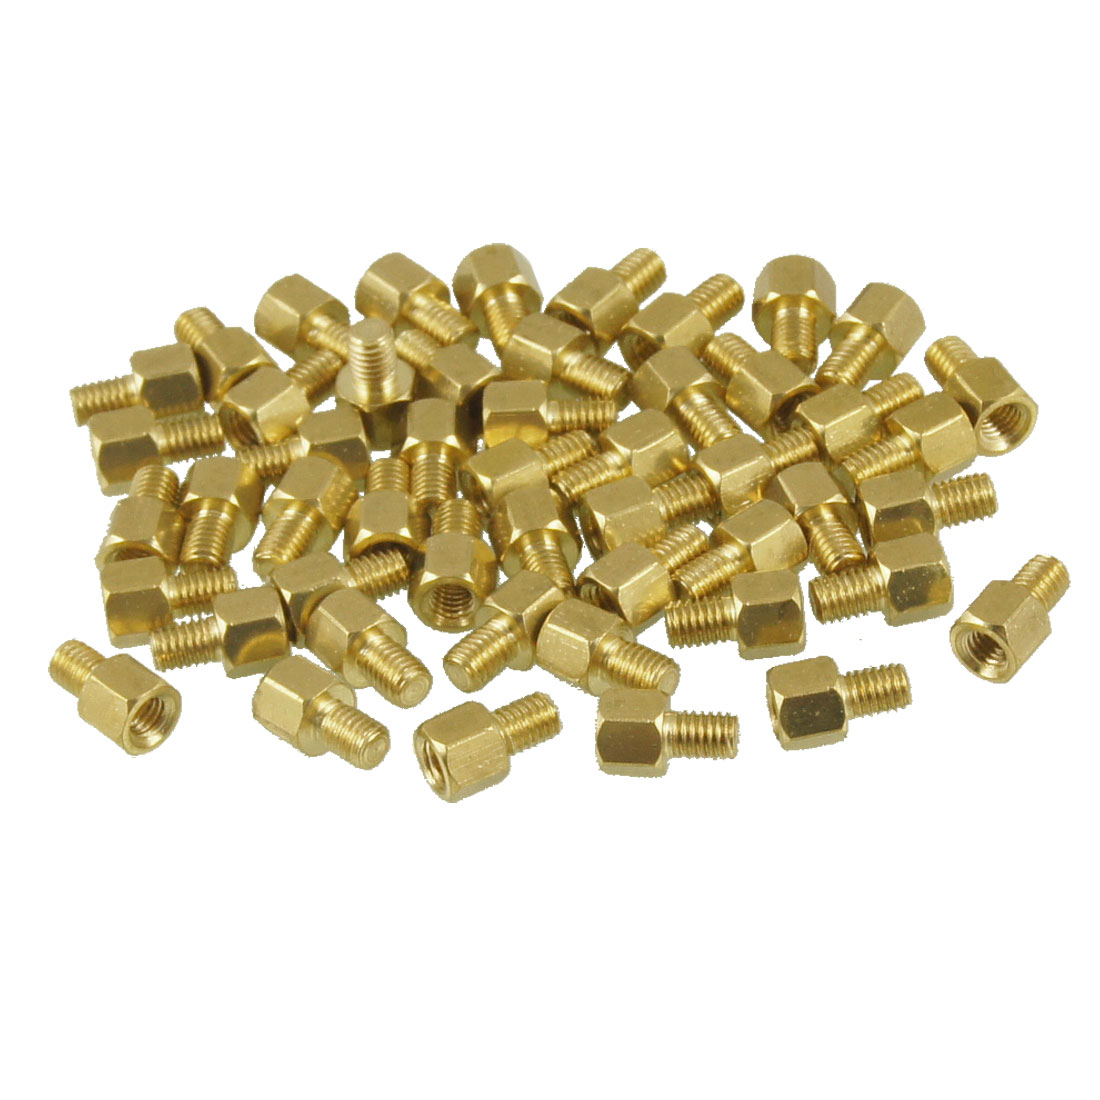 50 Pcs Brass PCB Standoffs Hexagonal Spacers M3 Male x M3 Female 4mm